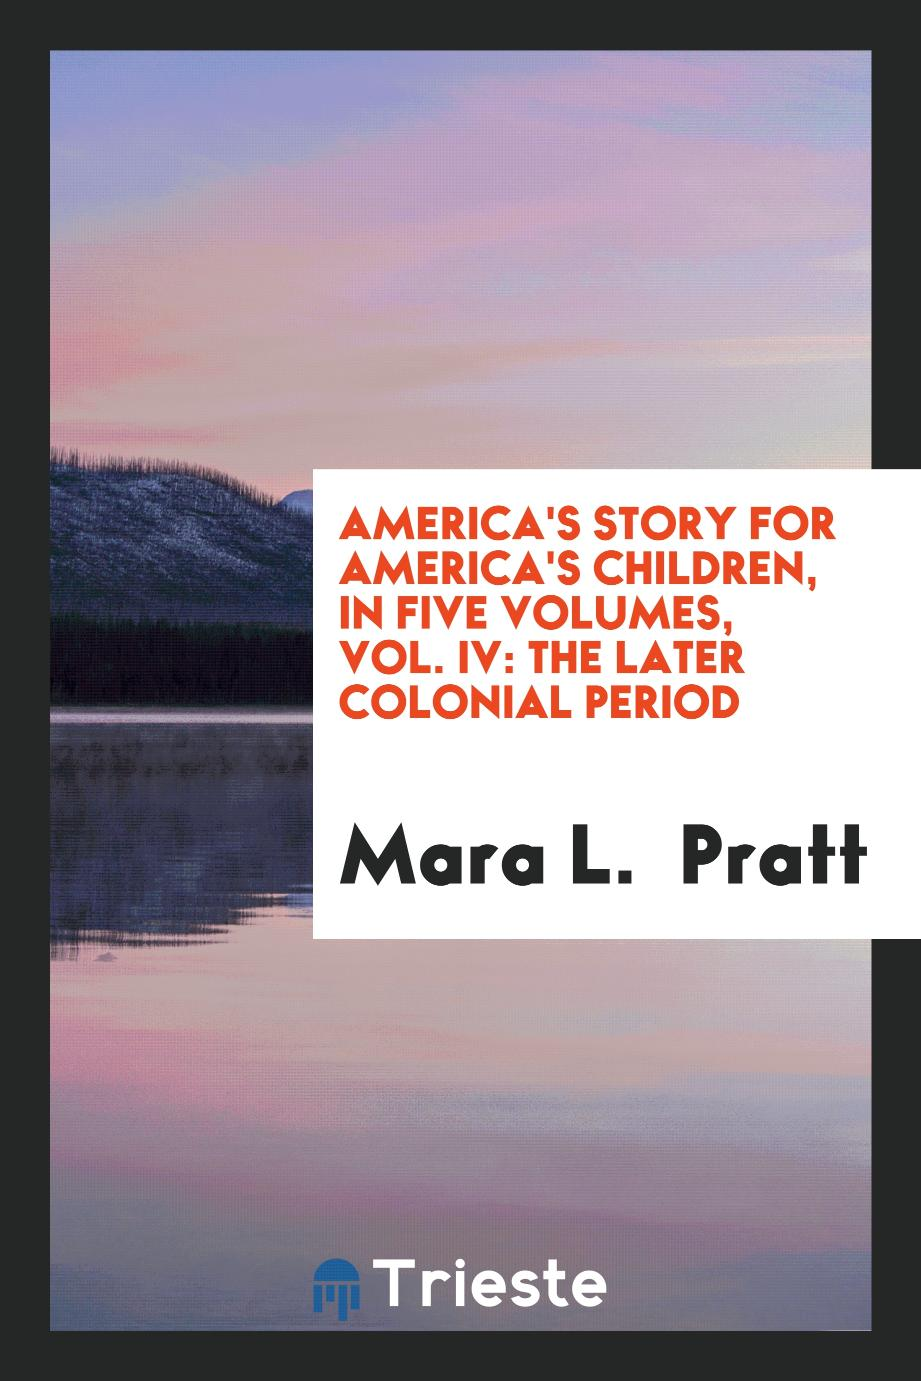 America's Story for America's Children, in Five Volumes, Vol. IV: The Later Colonial Period